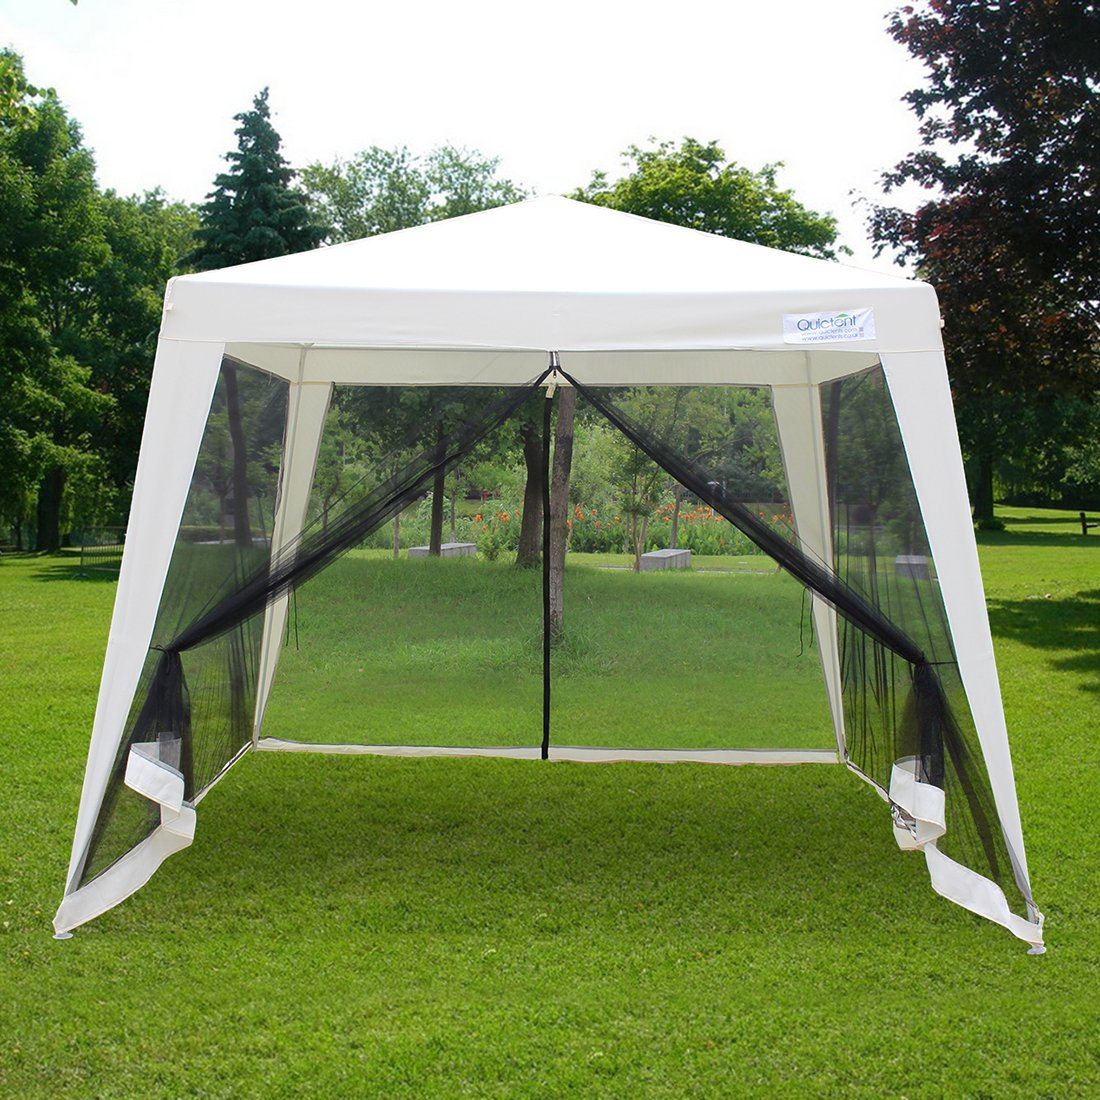 Quictent 10'x10'/7.9'x7.9' Outdoor Trapezoid Canopy Party Tent Gazebo Screen House Sun Shade Shelter with Fully Enclosed Black Mesh Side Wall Beige 1203-B